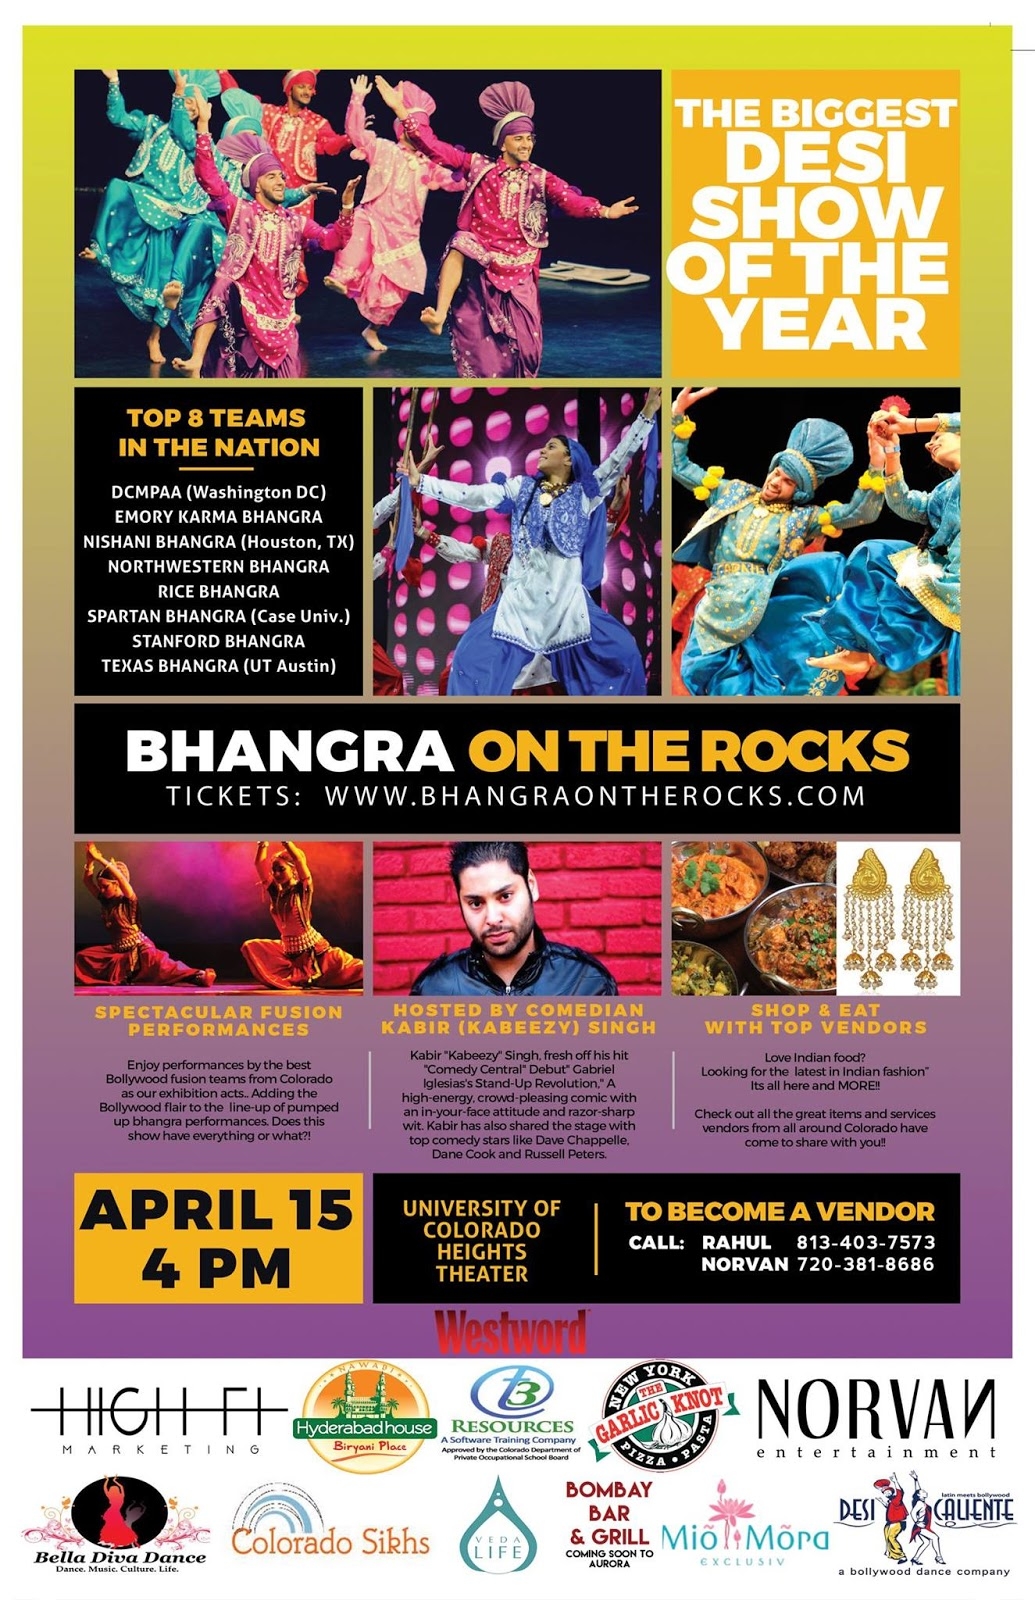 The Very First Time I Did Bhangra Was In 2007 On An Indian Cruise Ship My How  To Become A Ramp Model